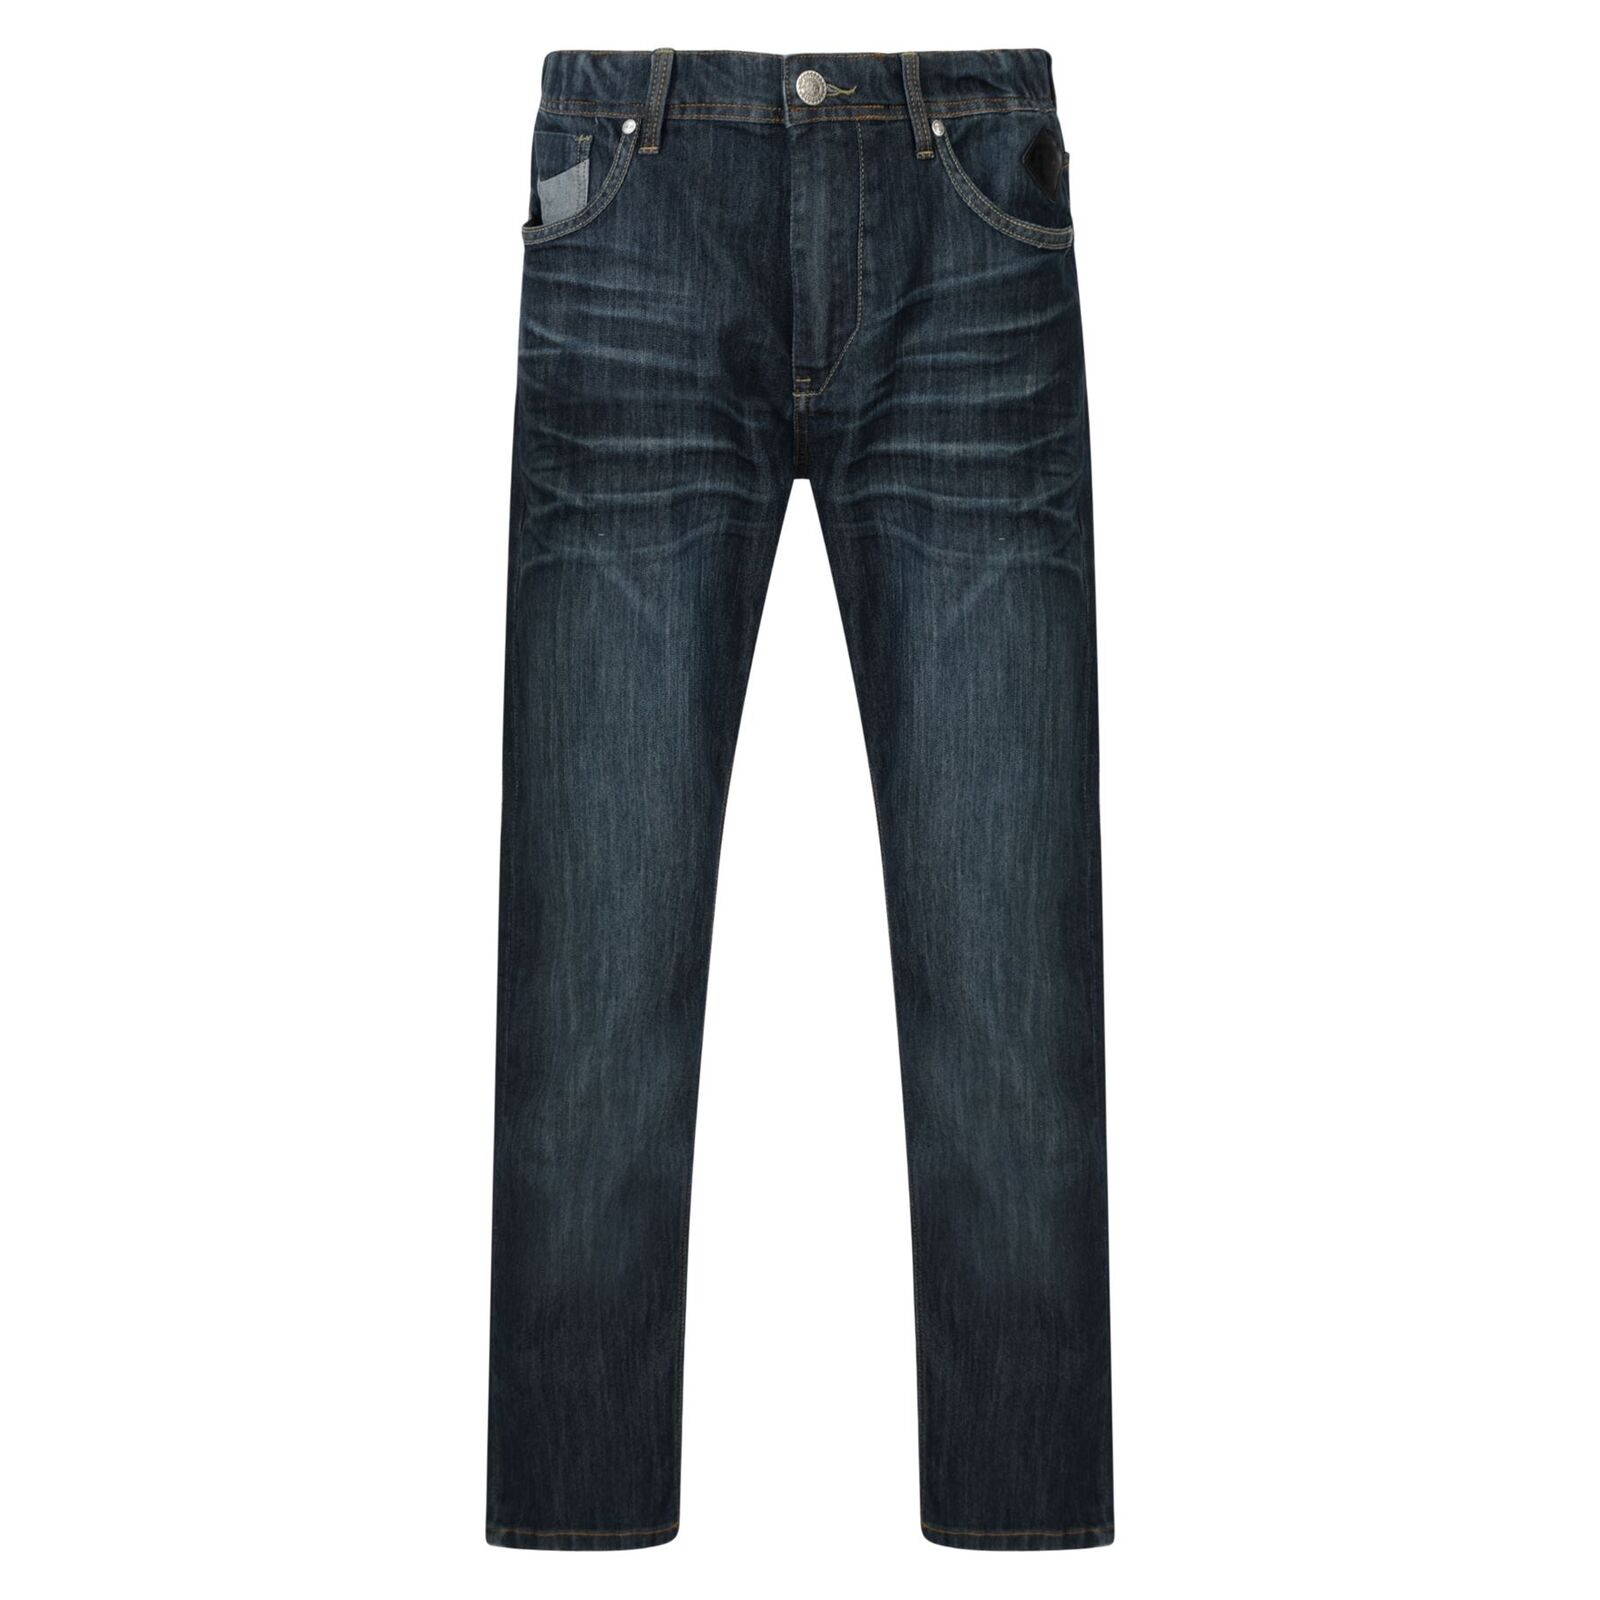 Kam men Regular Stretch Indigowash Jeans (Rory )